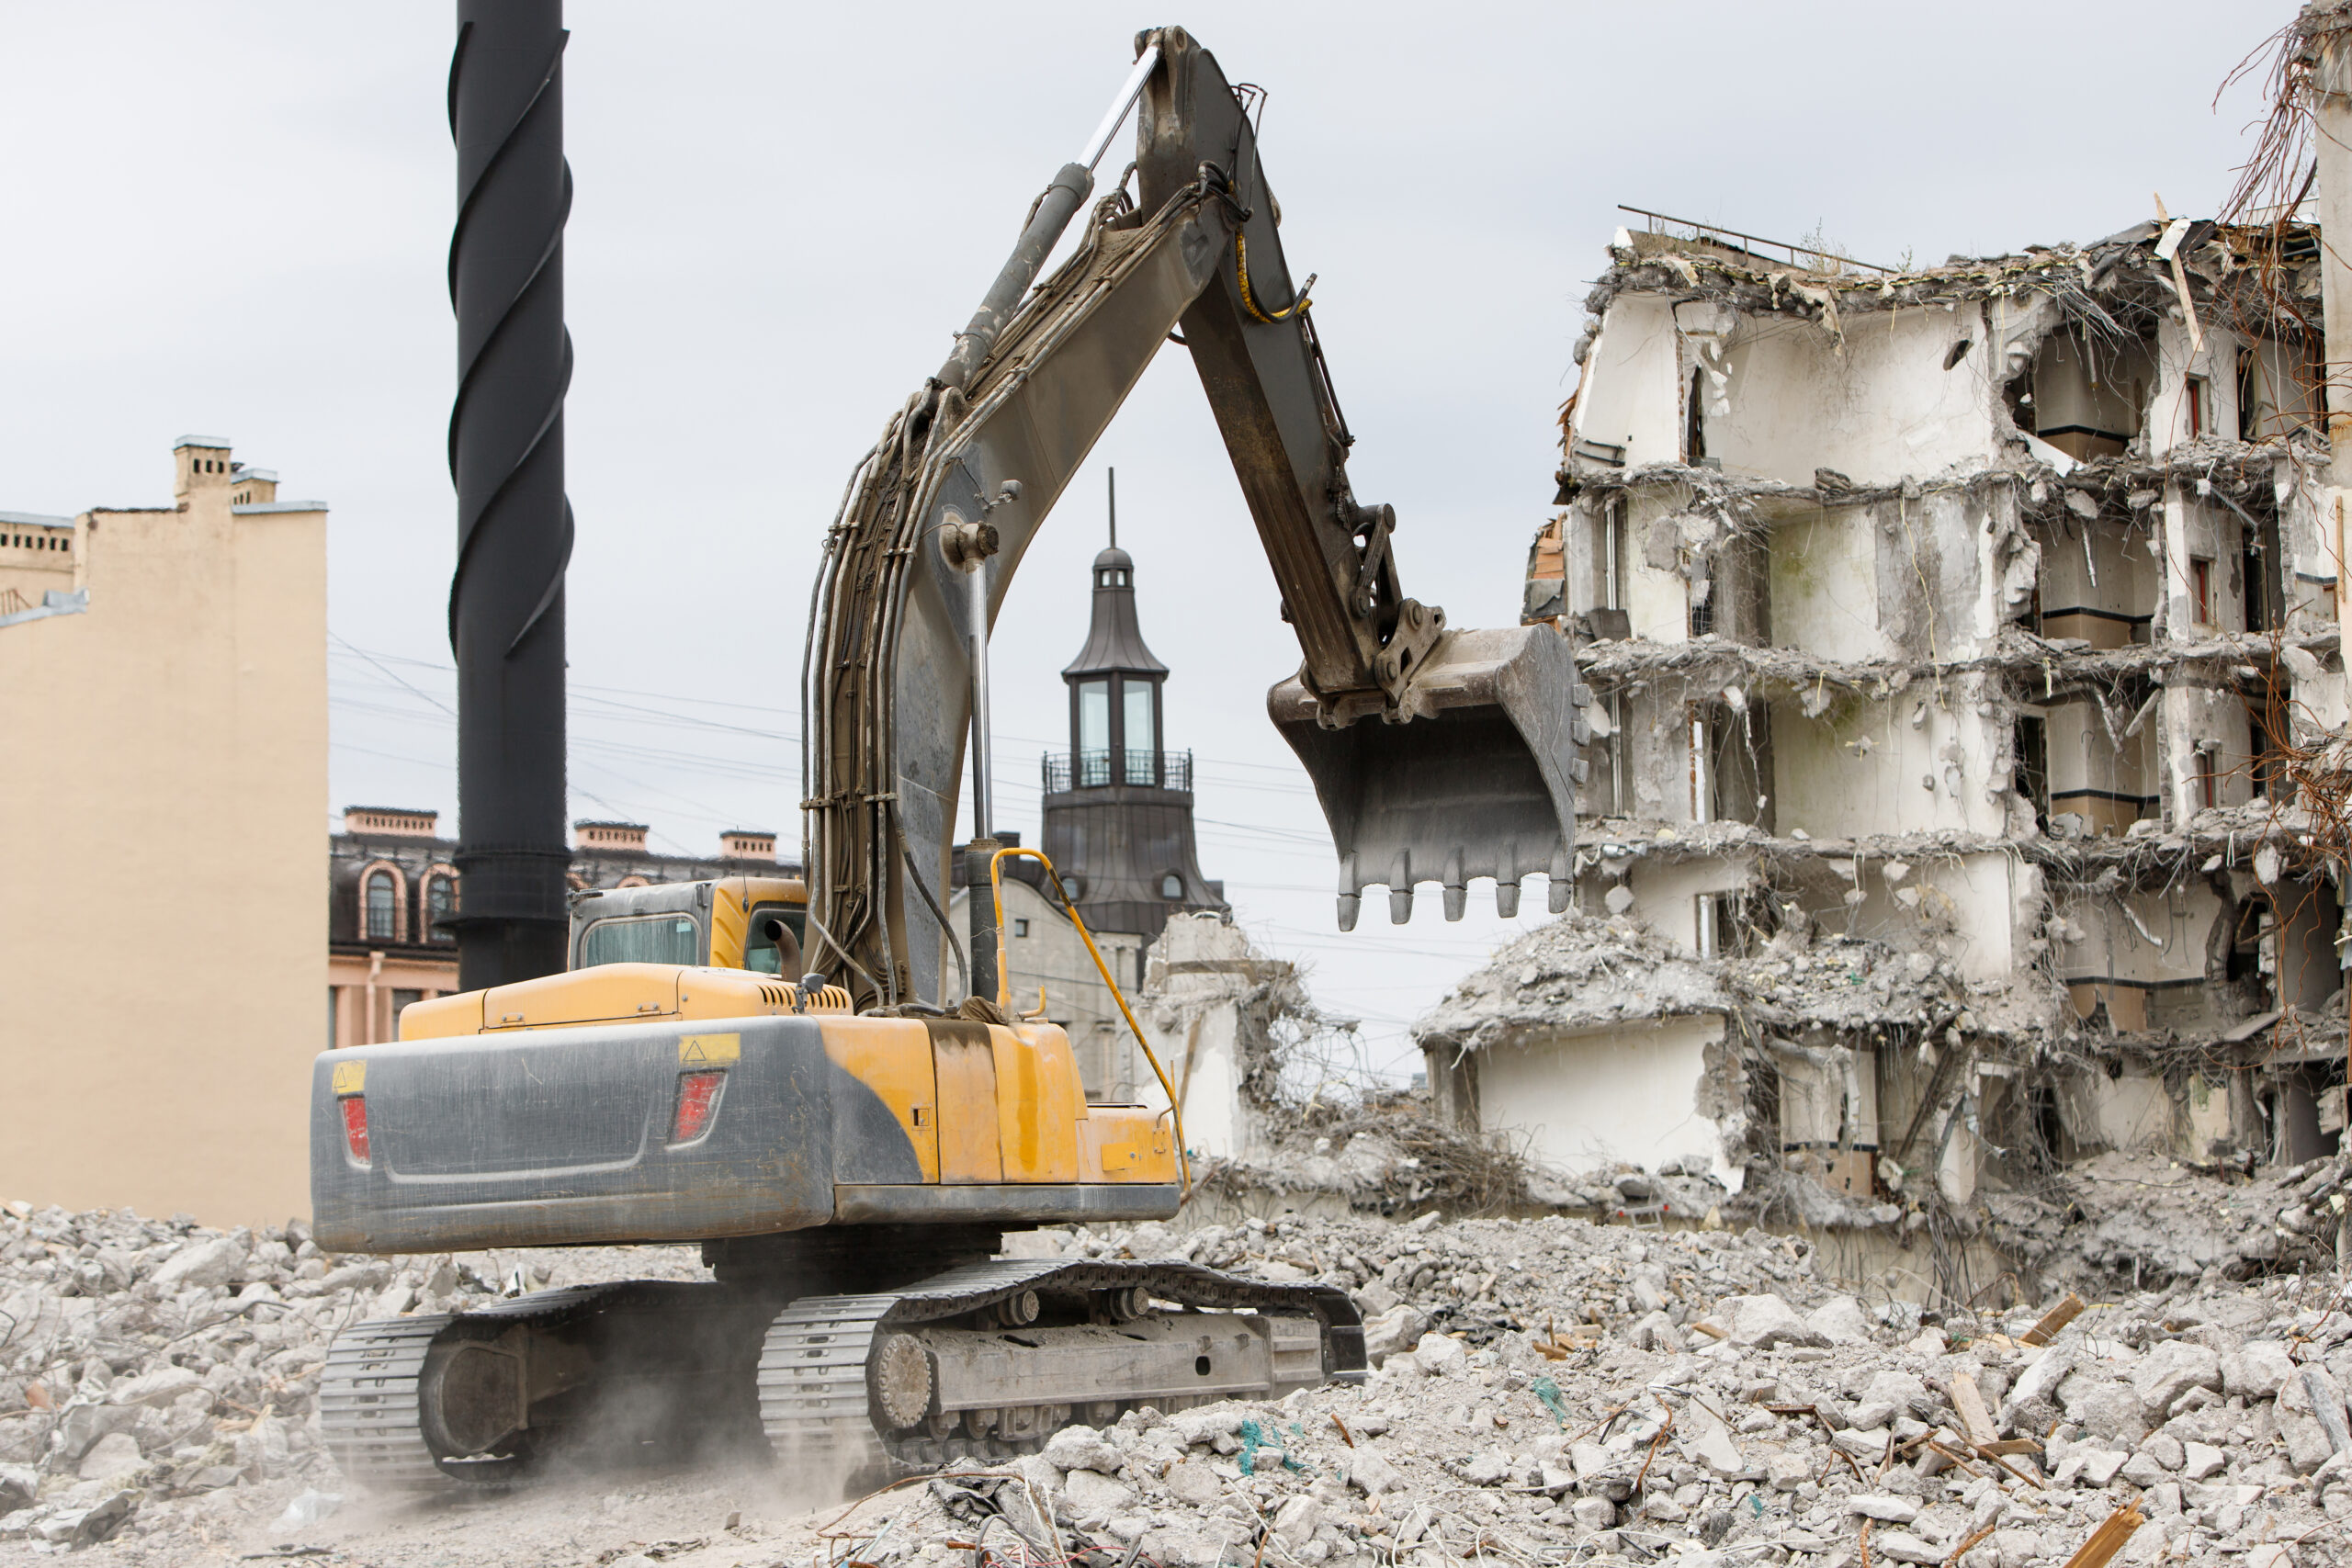 Building of the former hotel demolition for new construction, using a special hydraulic excavator-destroyer. Dismantling of house.